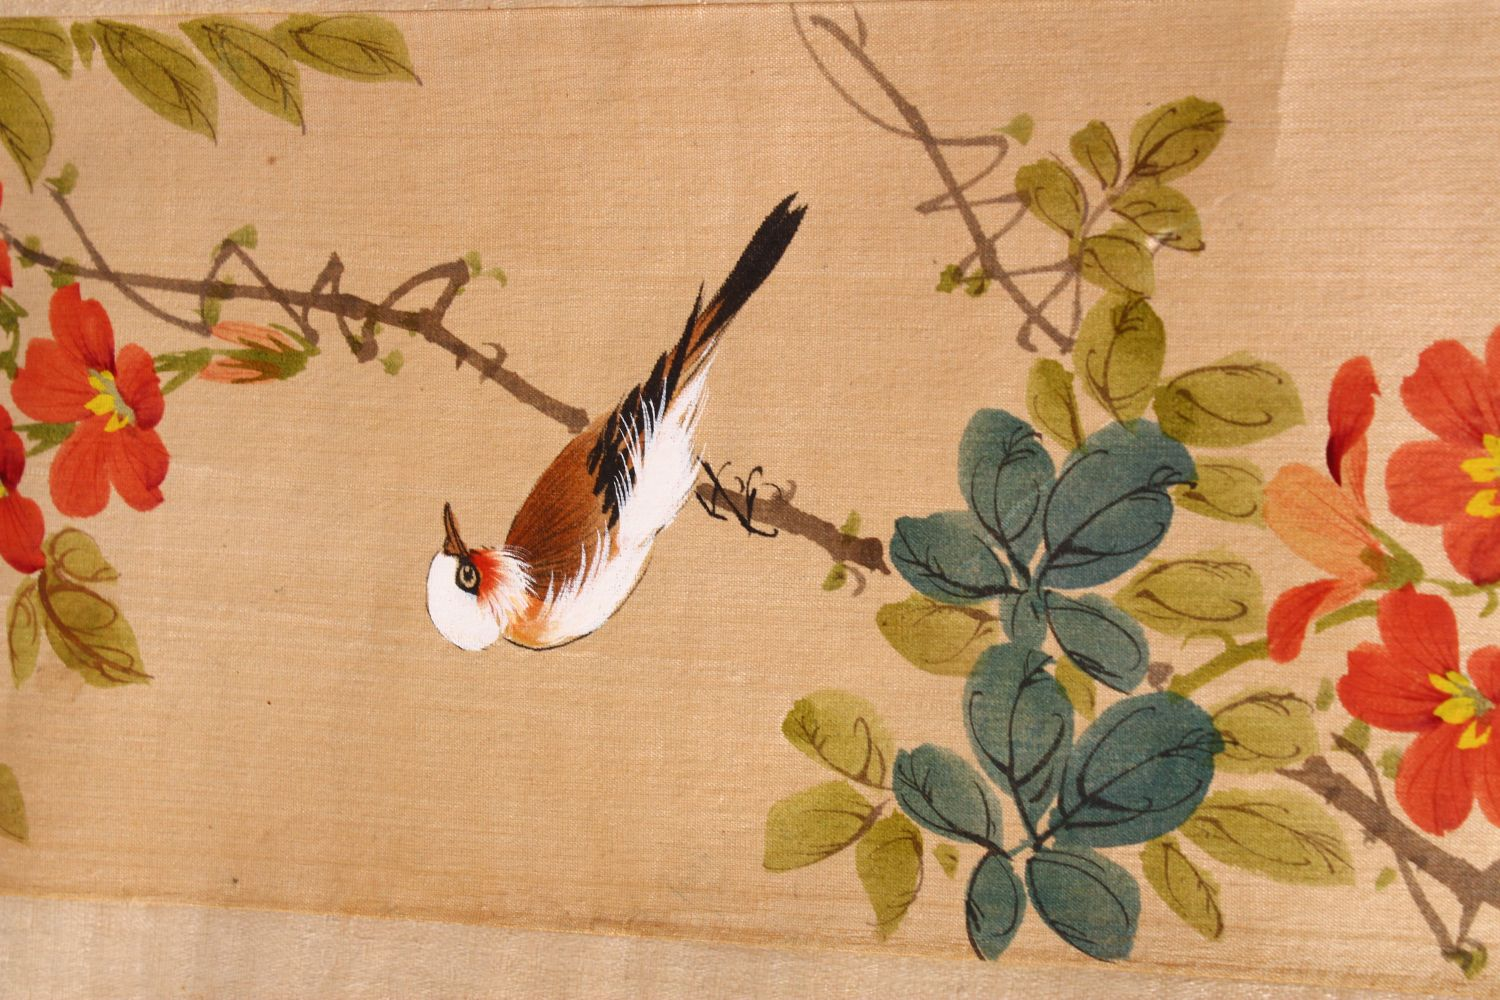 FOUR SMALL CHINESE SCROLL PAINTINGS, depicting birds on branches (AF), largest image 95cm x 29cm. - Image 7 of 12